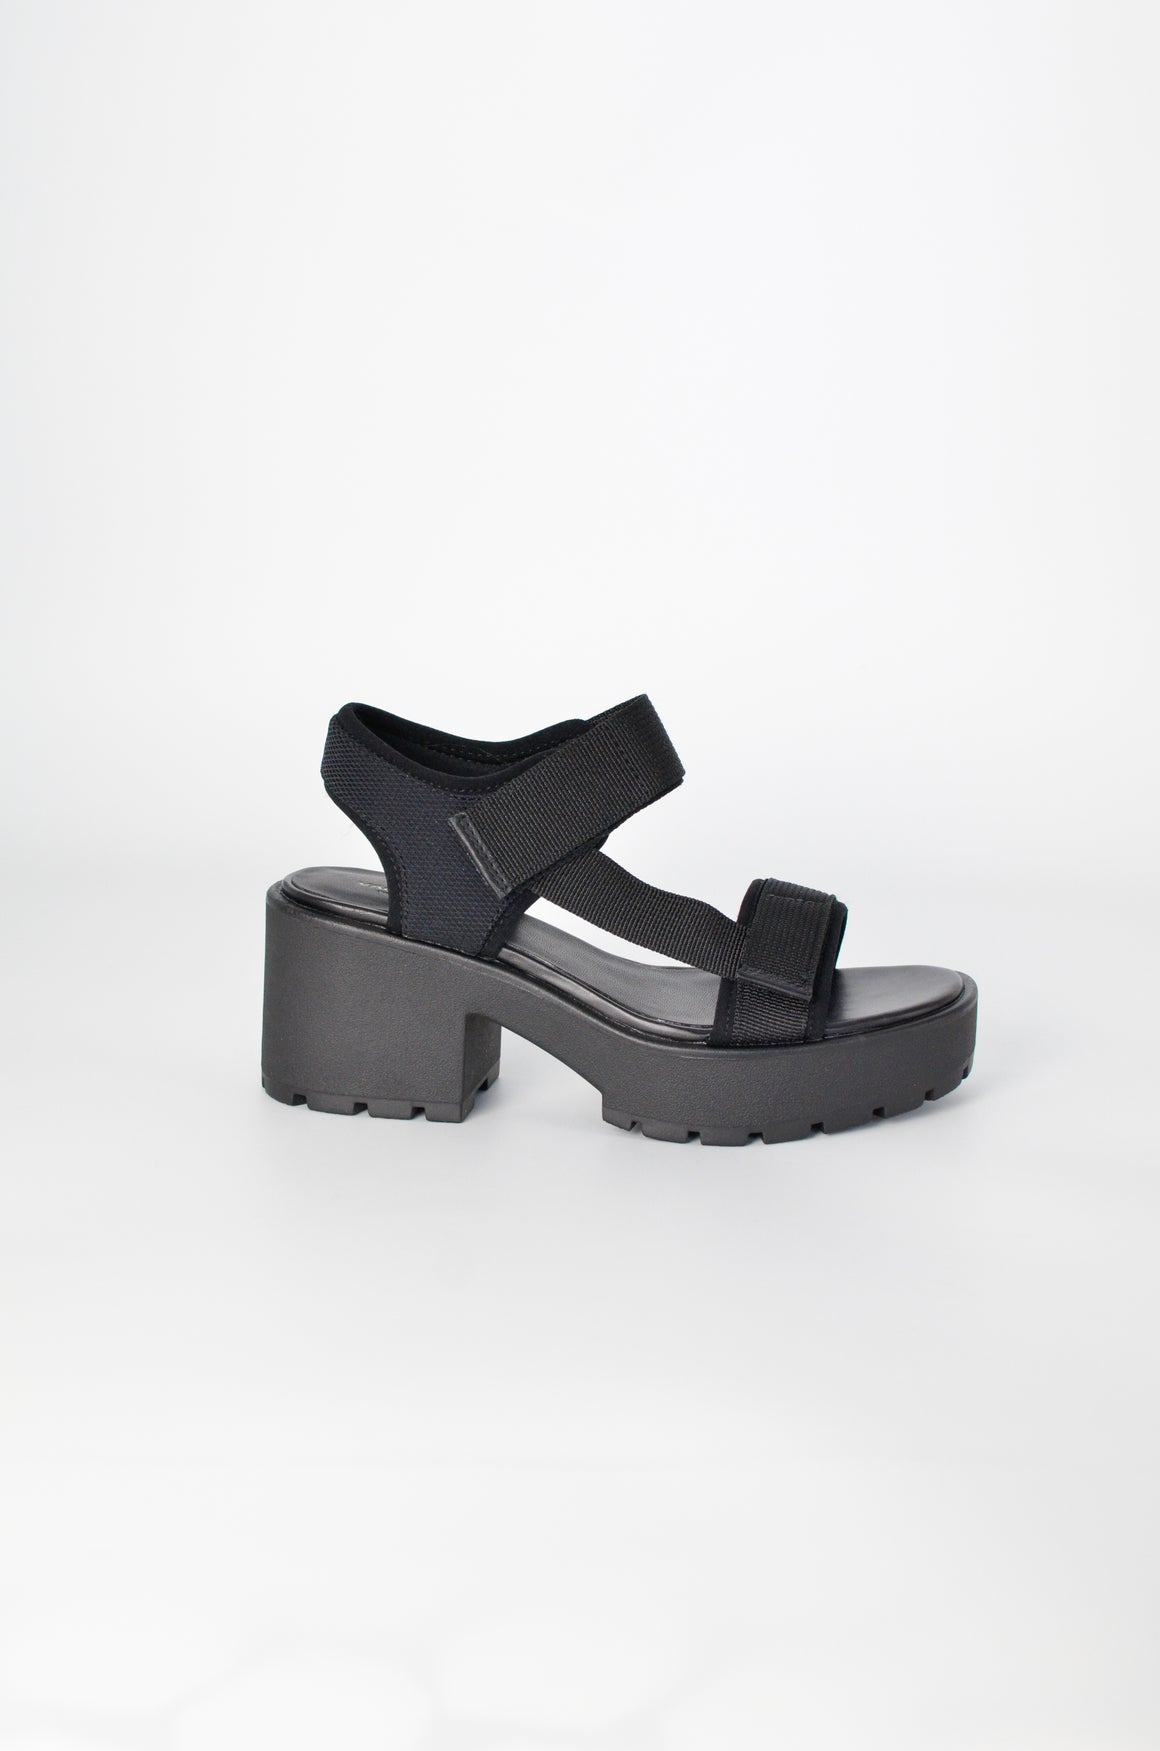 Dioon Sandals - Black